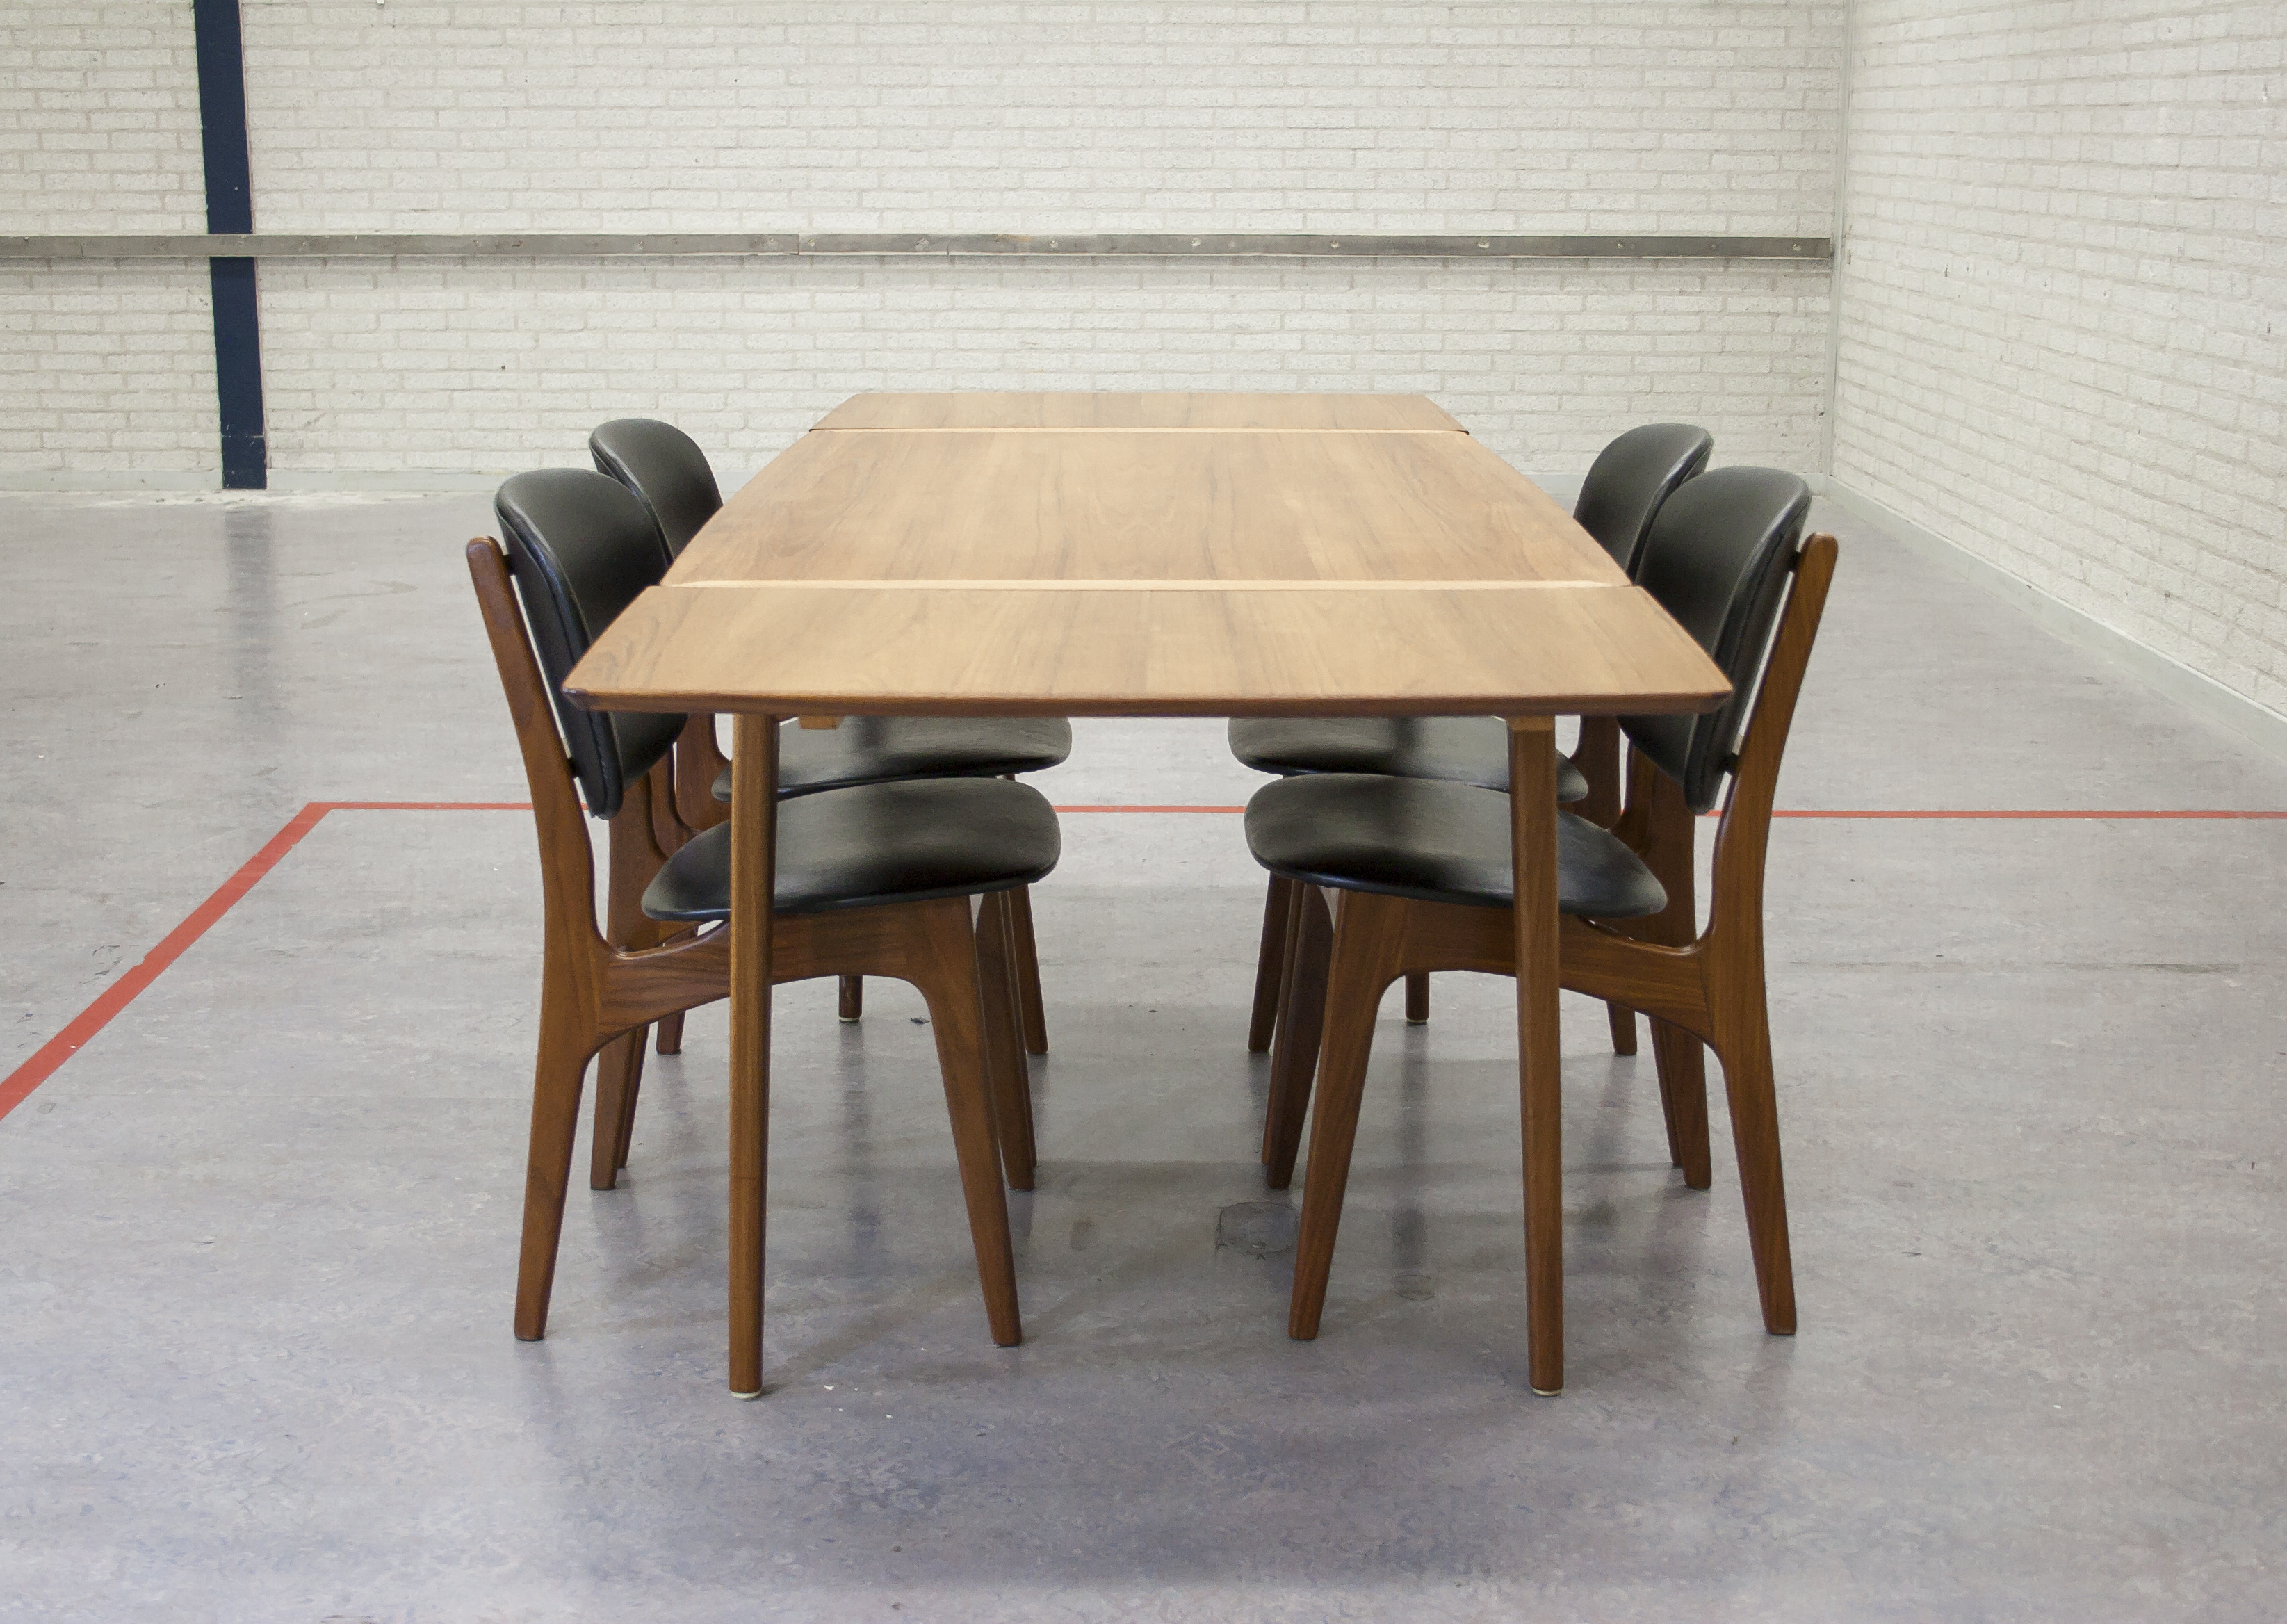 TEAK EETTAFEL MET VIER VINTAGE STOELEN   Shapes and Sizes